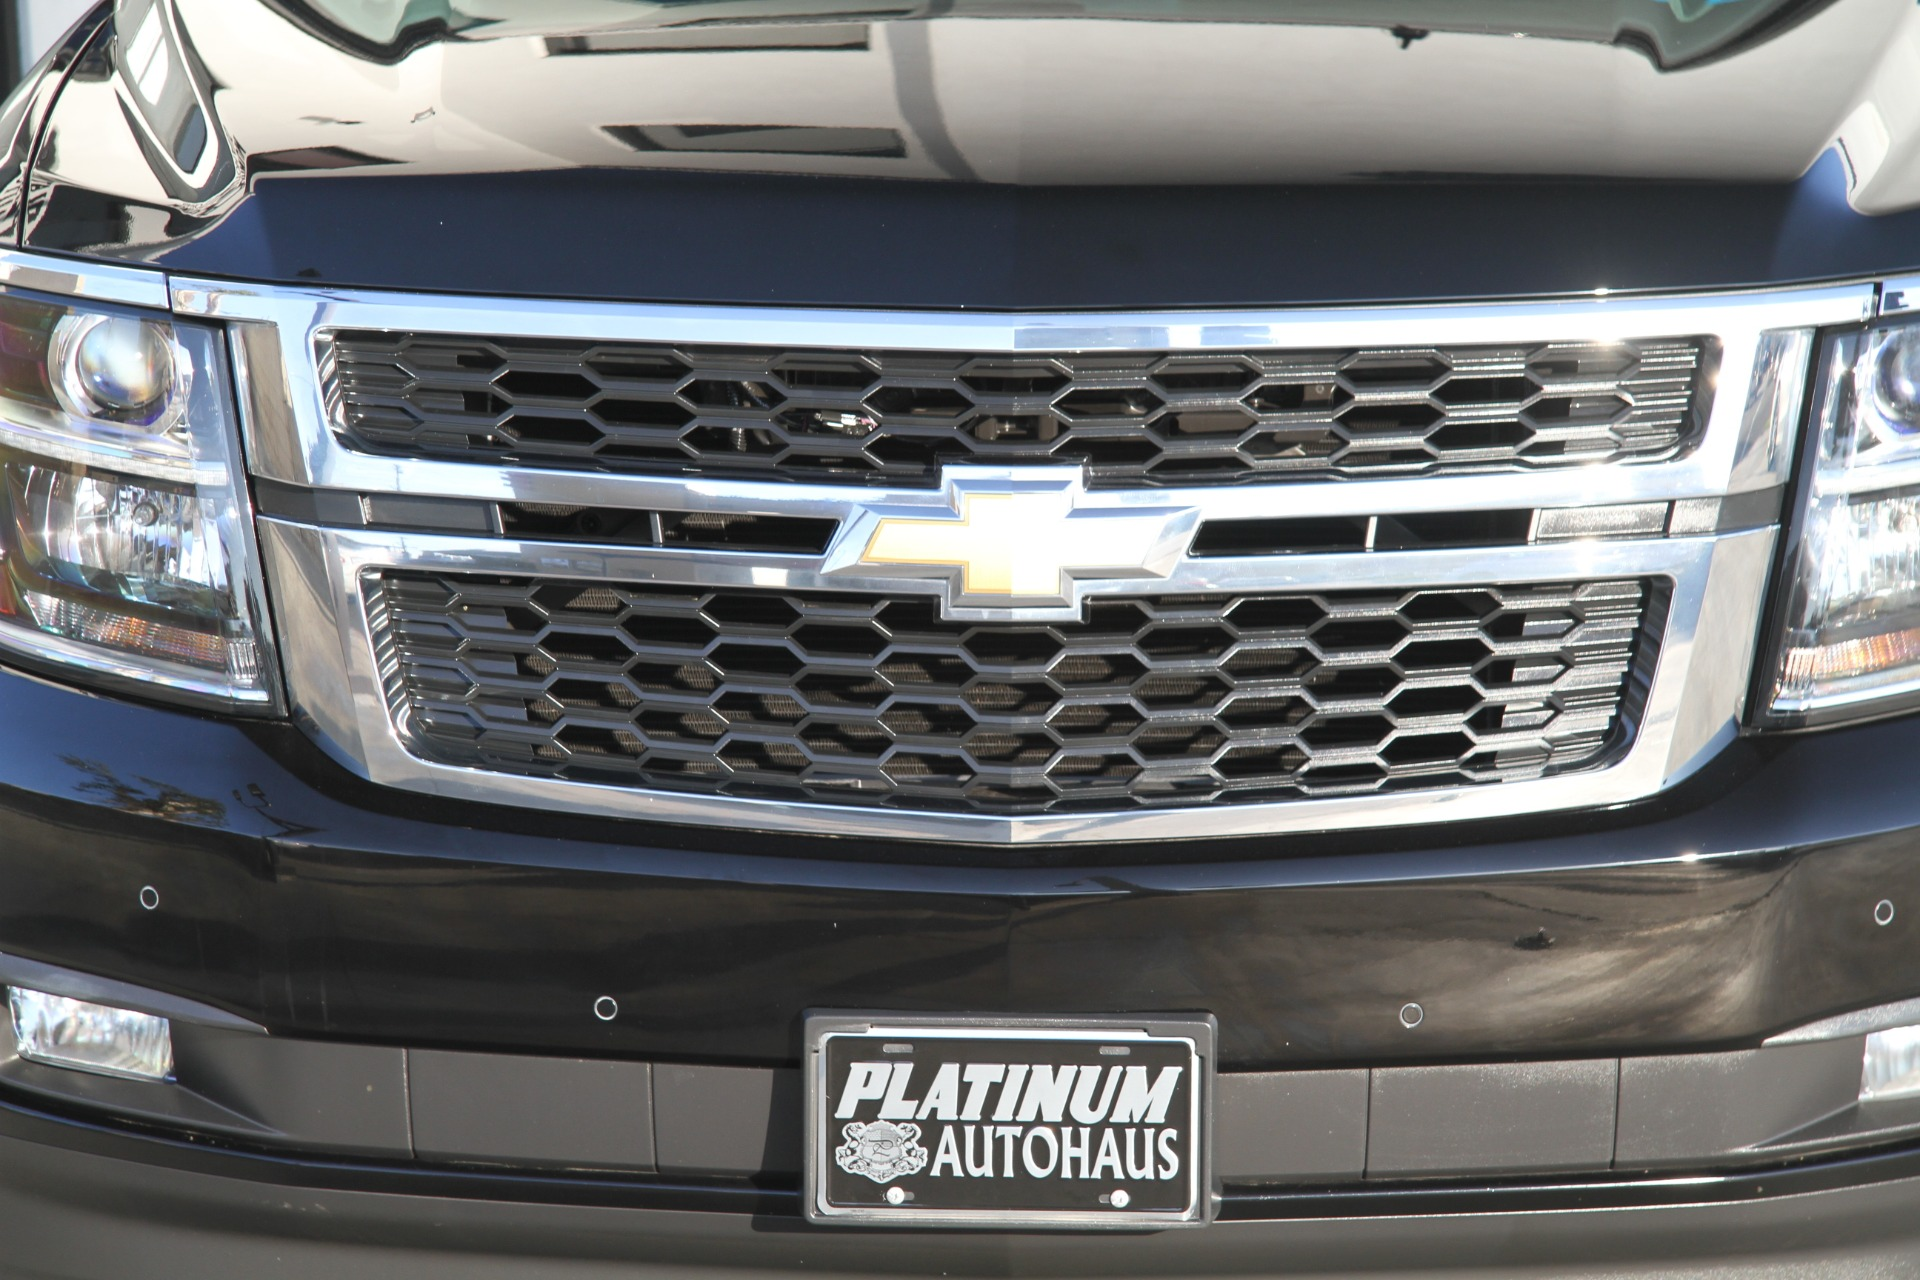 Used Tahoe For Sale Near Me >> 2015 Chevrolet Tahoe LT *** LOW MILES *** Stock # 6081 for ...